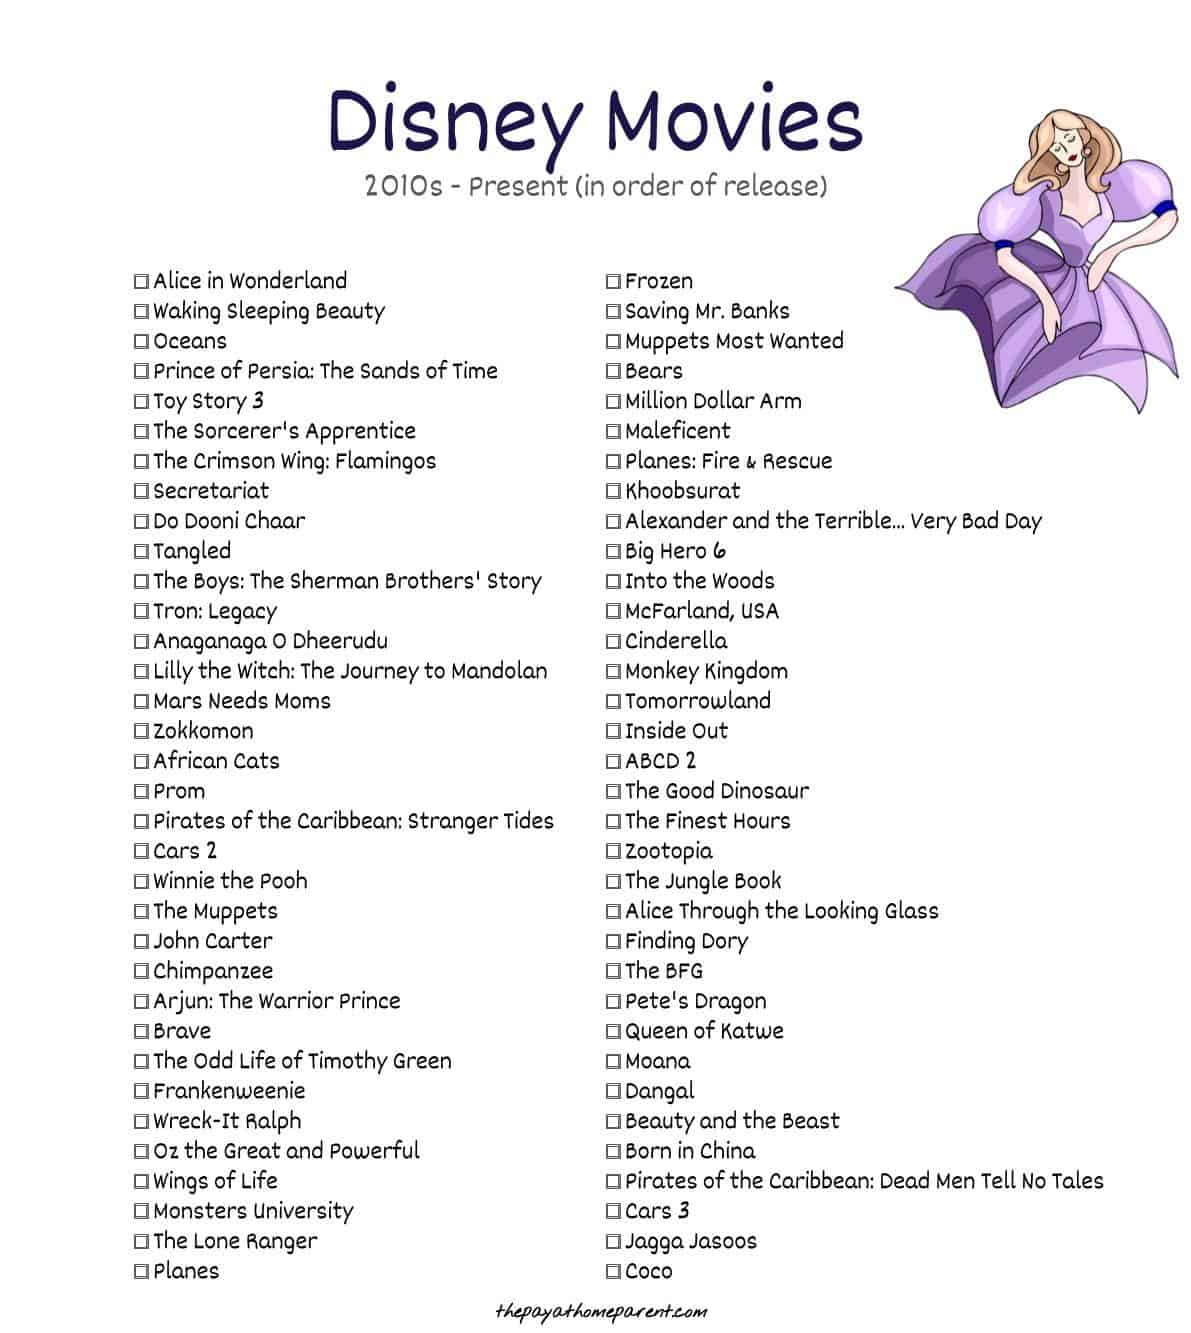 400+ Disney Movies List That You Can Download Absolutely FREE